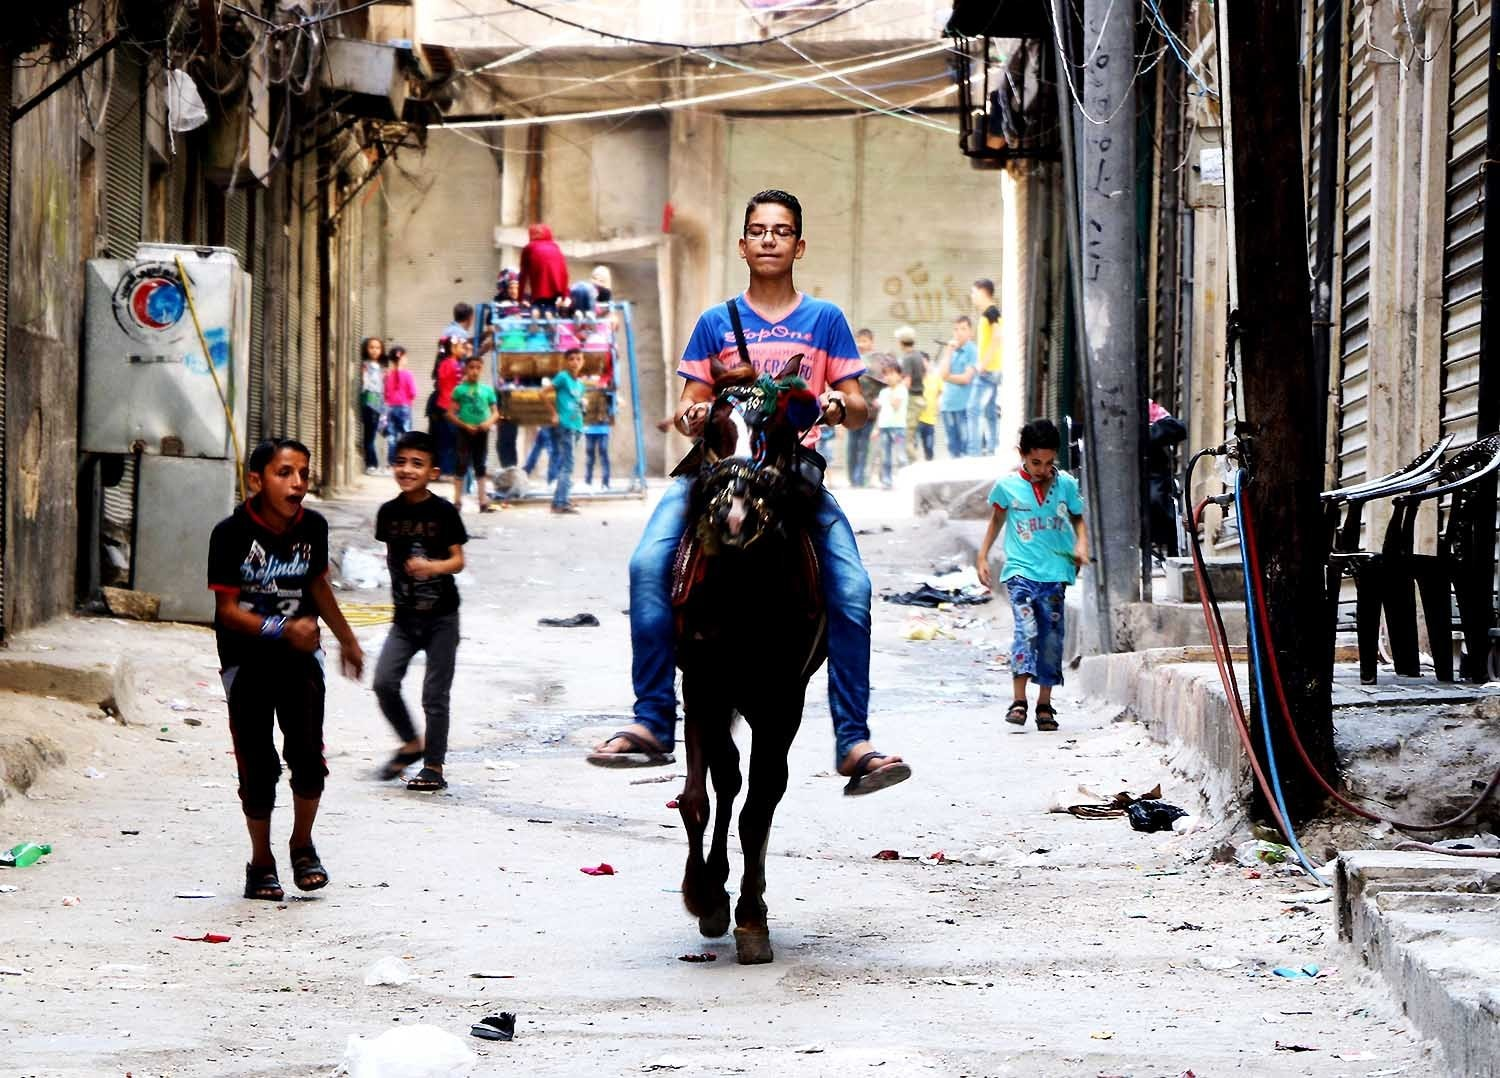 A Syrian boy rides a horse as children play in the street in Aleppo as they celebrate the Eid al-Adha. — AFP